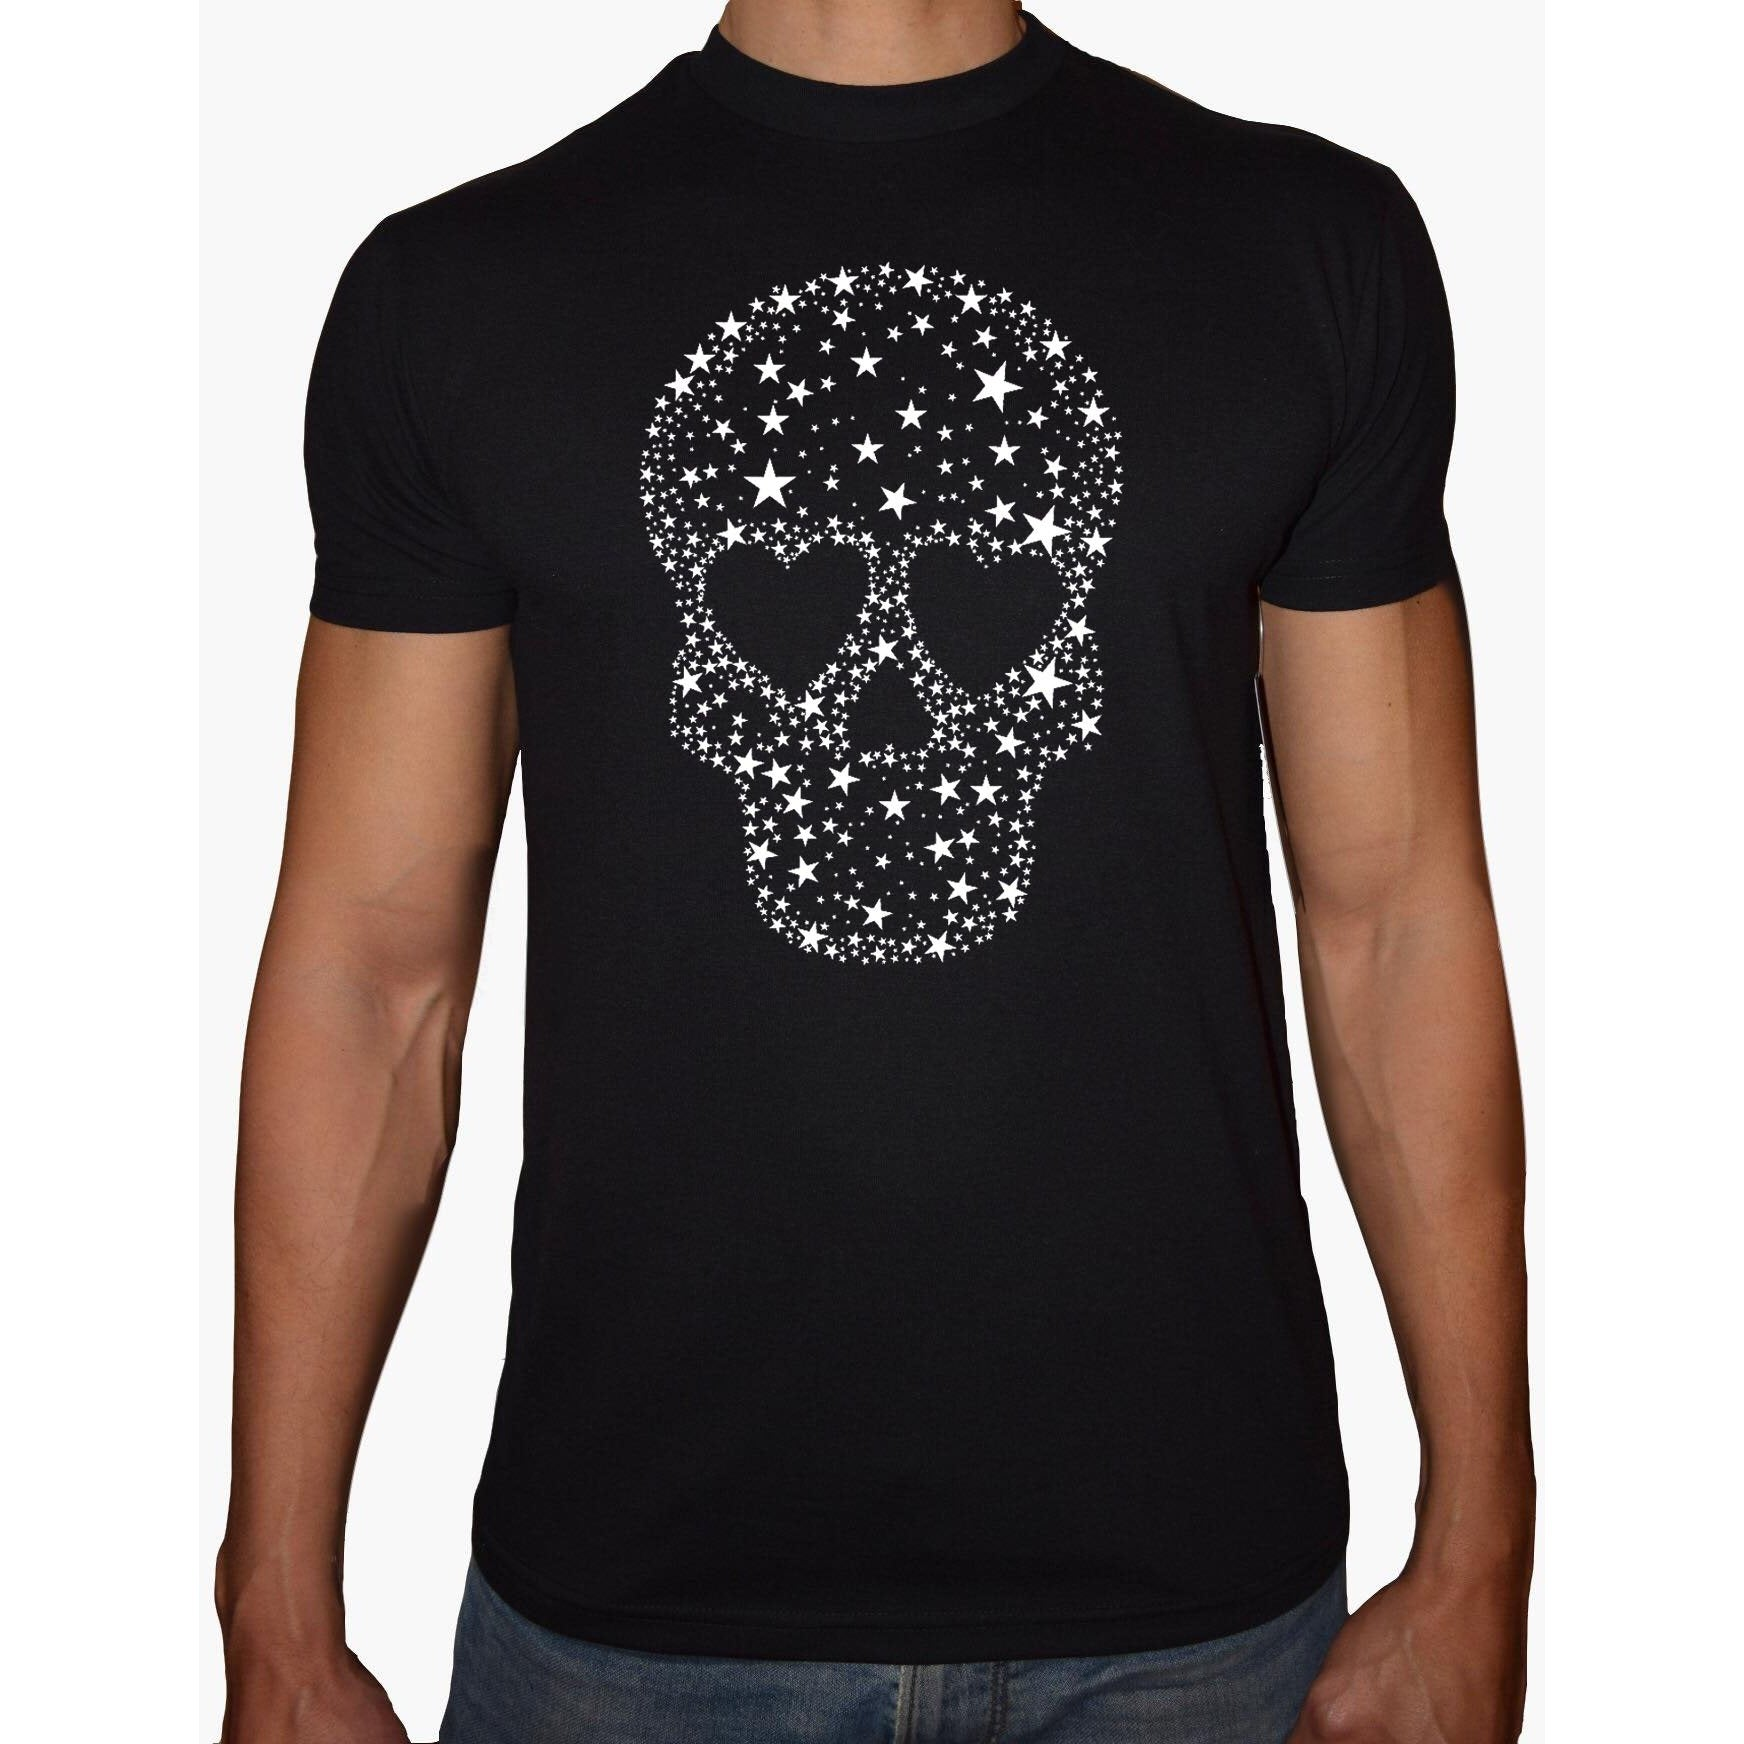 Phoenix Black Round Neck Printed Shirt Men (Skeleton)